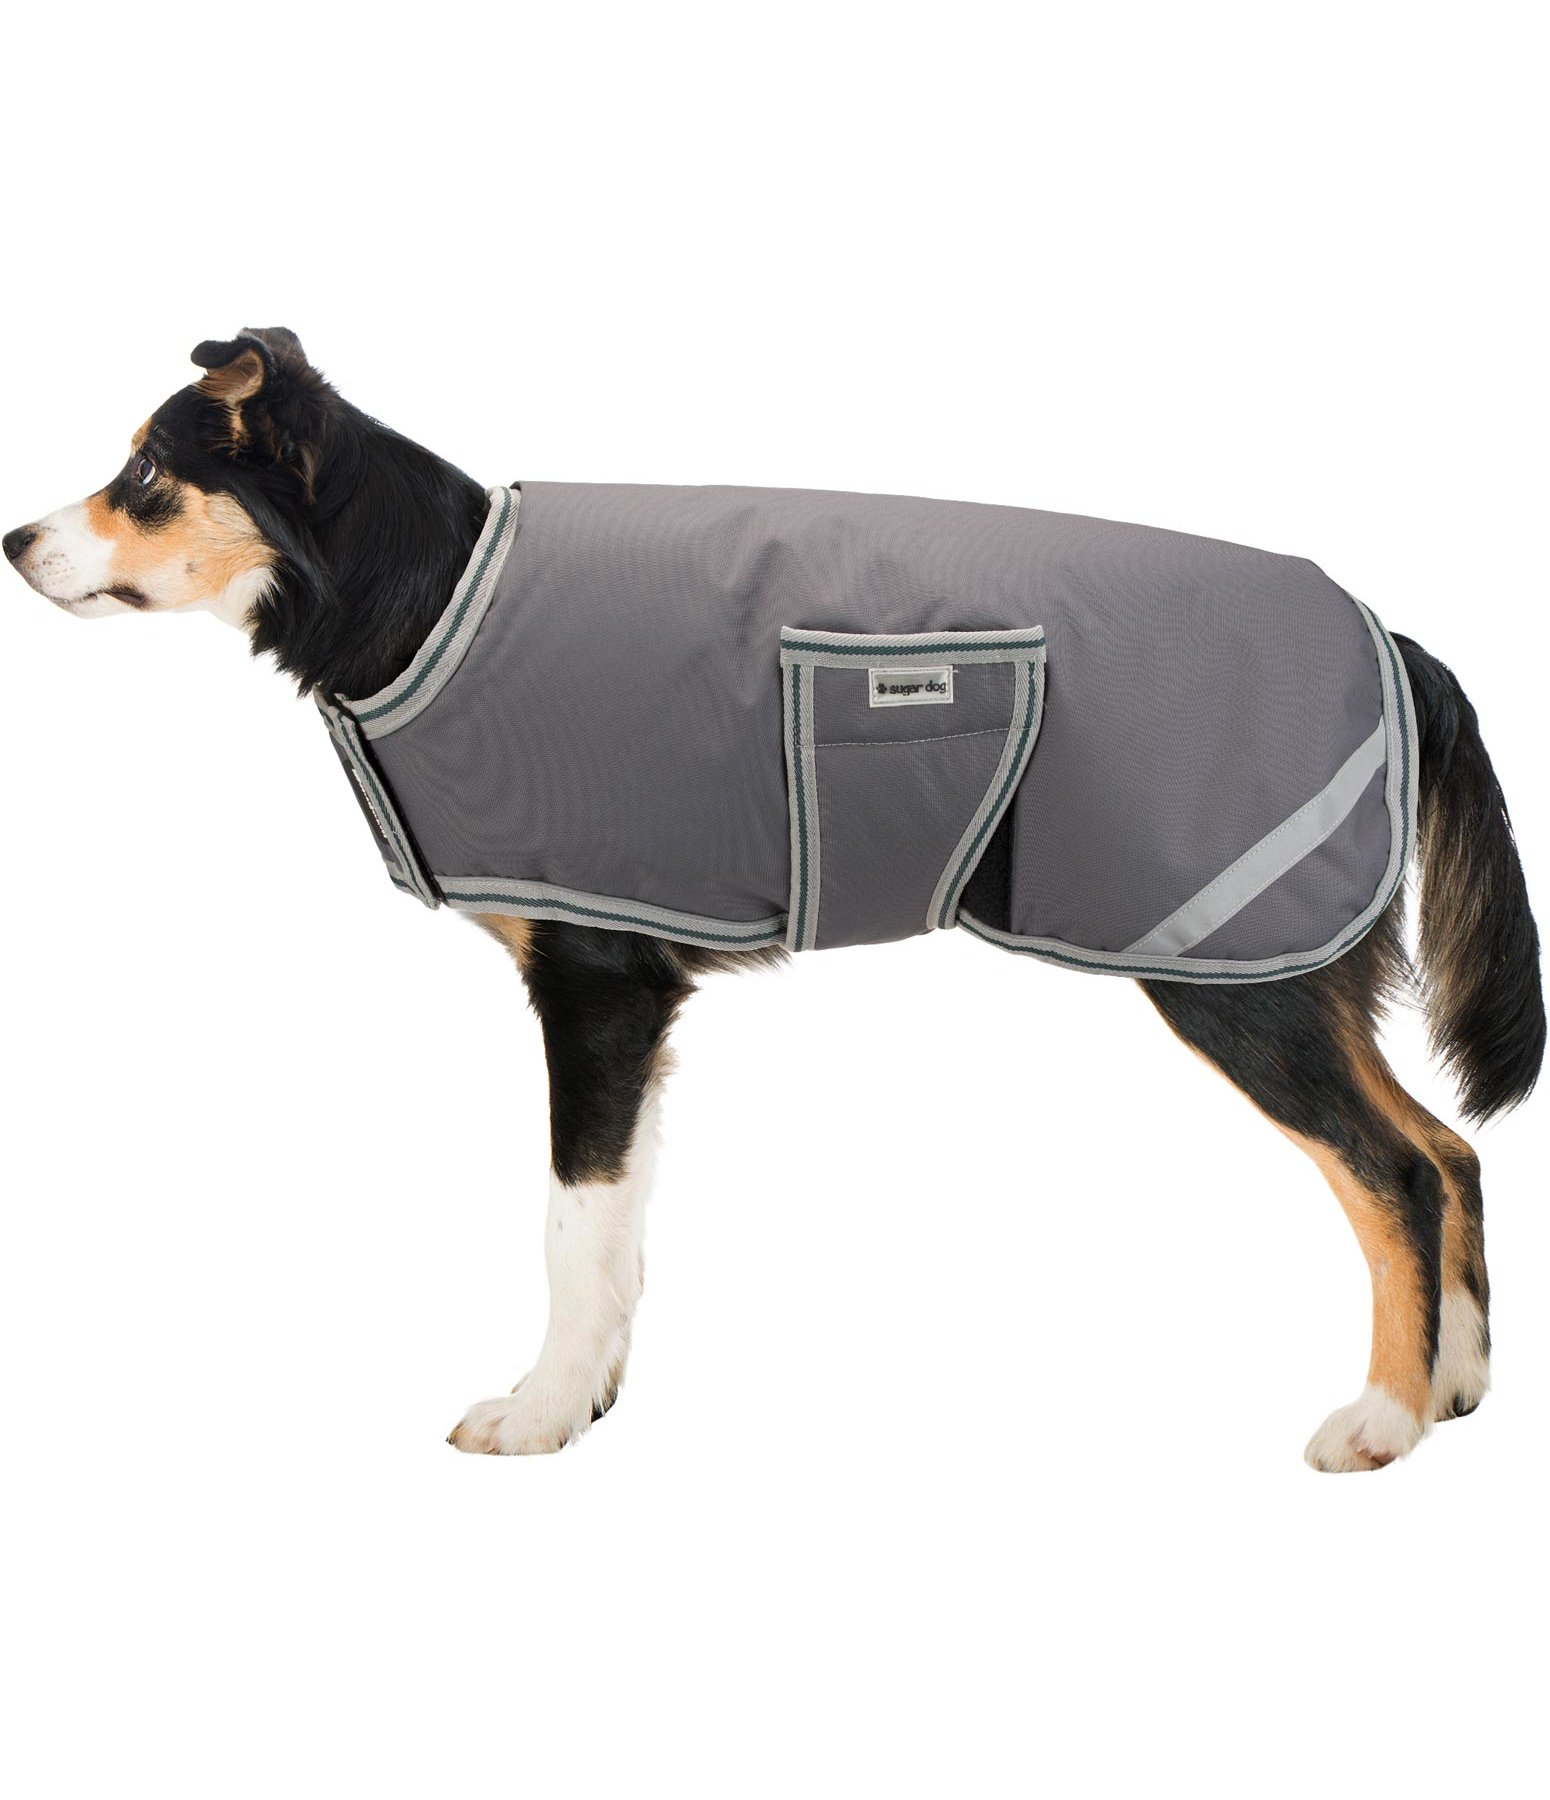 Winter Dog Coat 300 G Dog Coats Kramer Equestrian